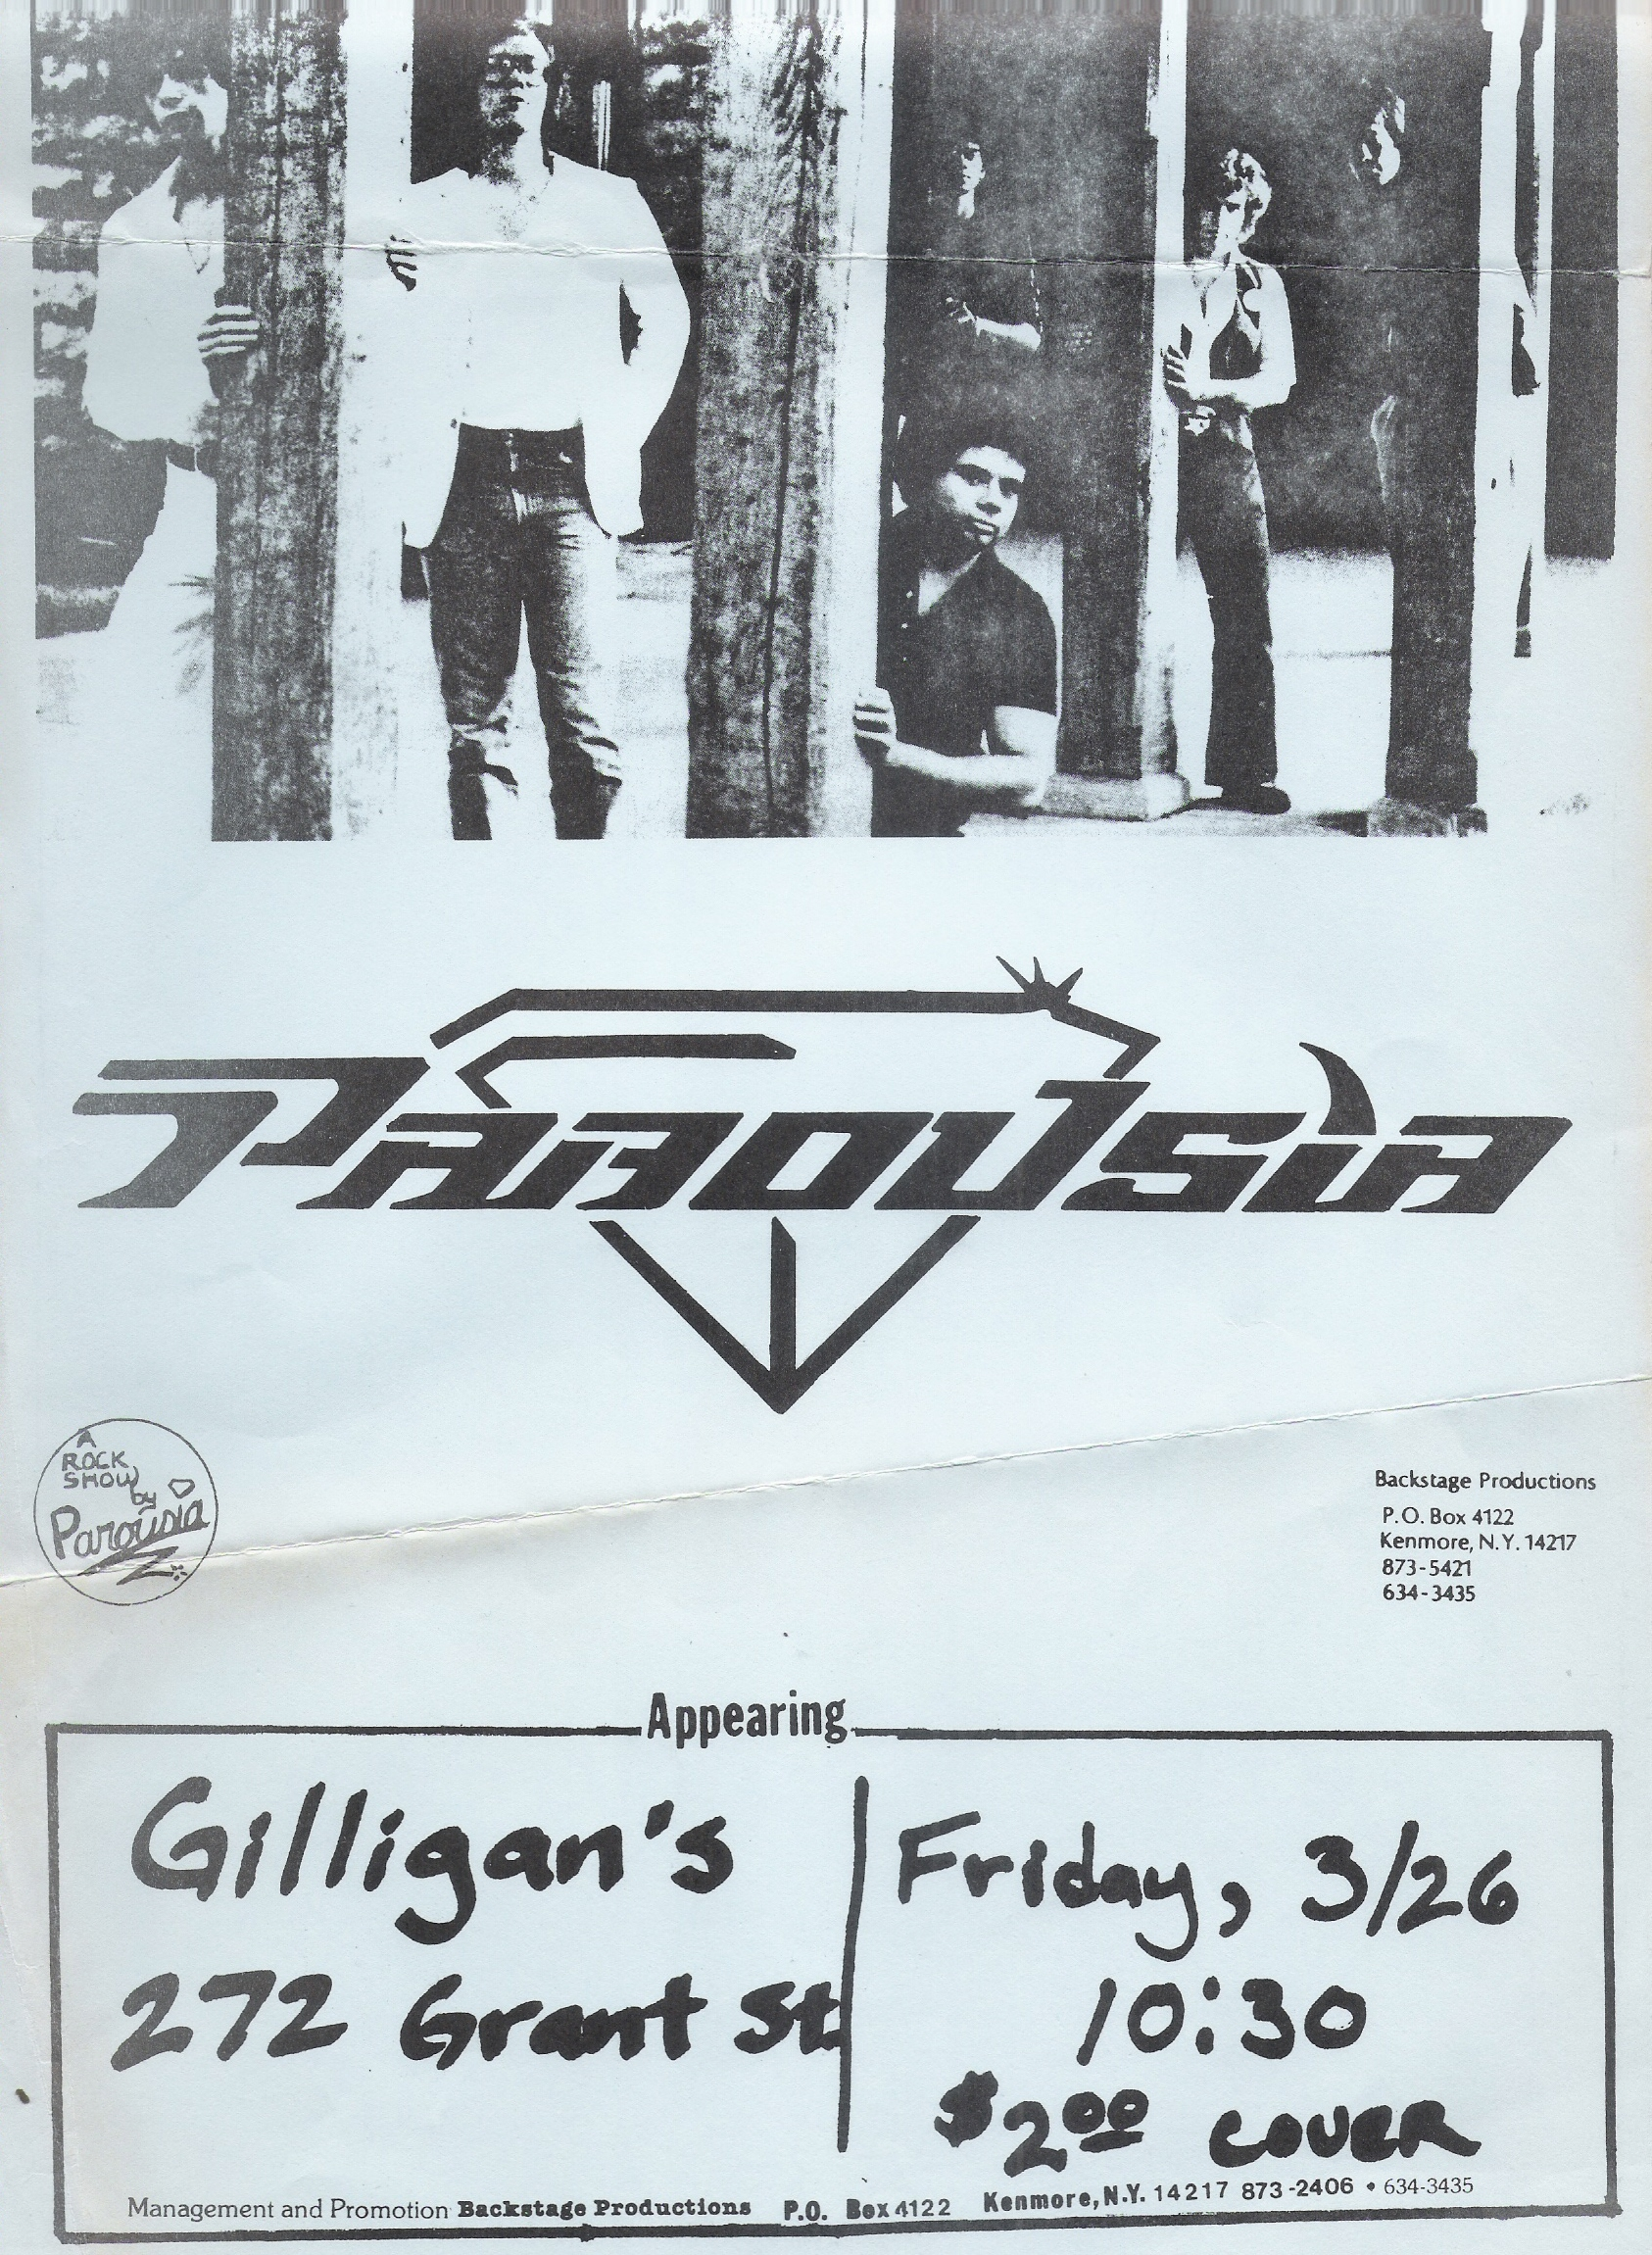 Parousia at Gilligan's. Friday March 26, 1982